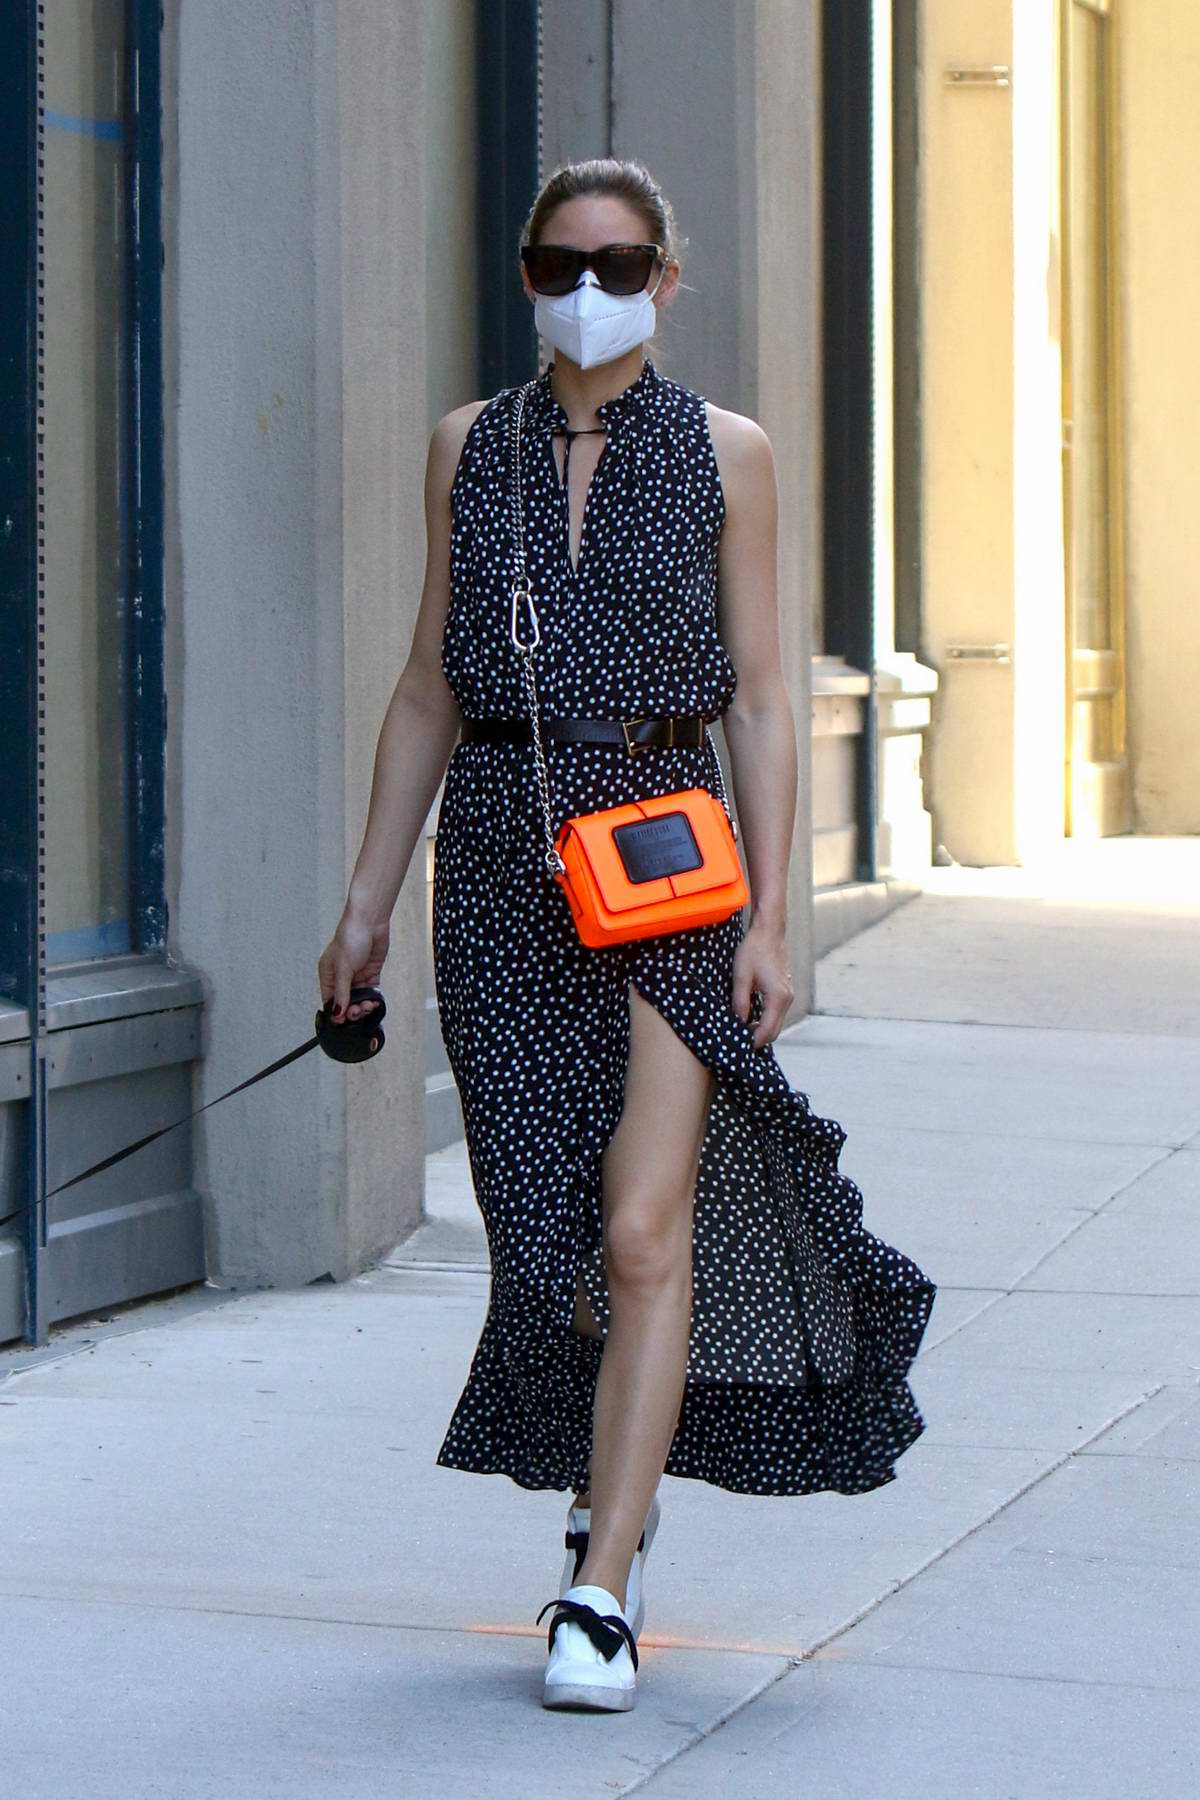 Olivia Palermo looks stylish as she takes her dog Mr Butler out for a walk in Downtown, Manhattan, New York City